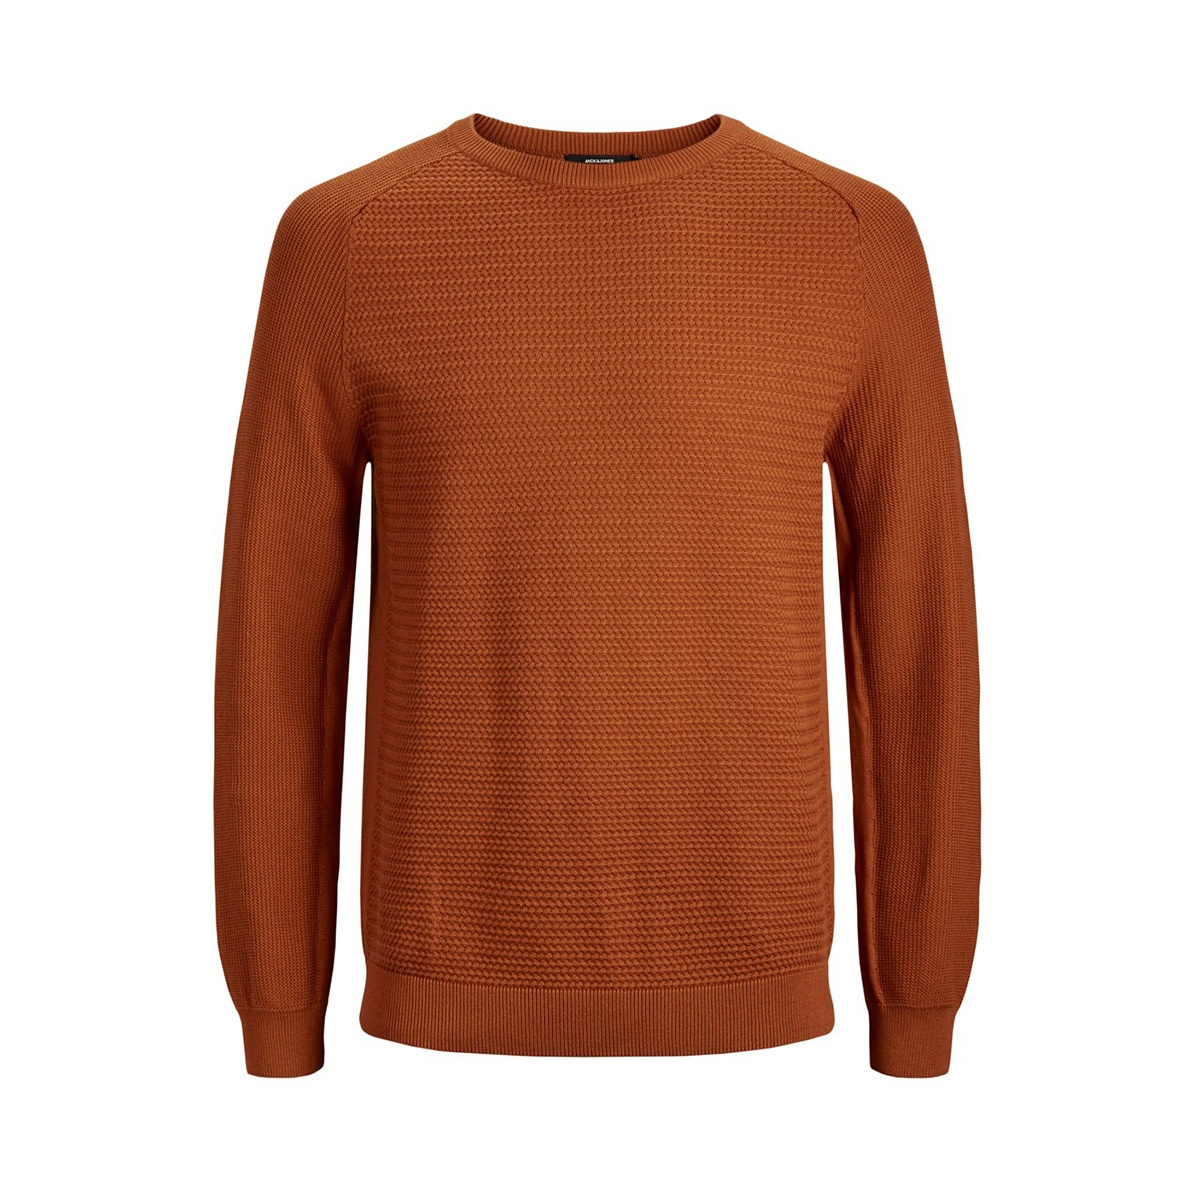 jprpost knit crew neck sts 12141495 jack & jones trui umber